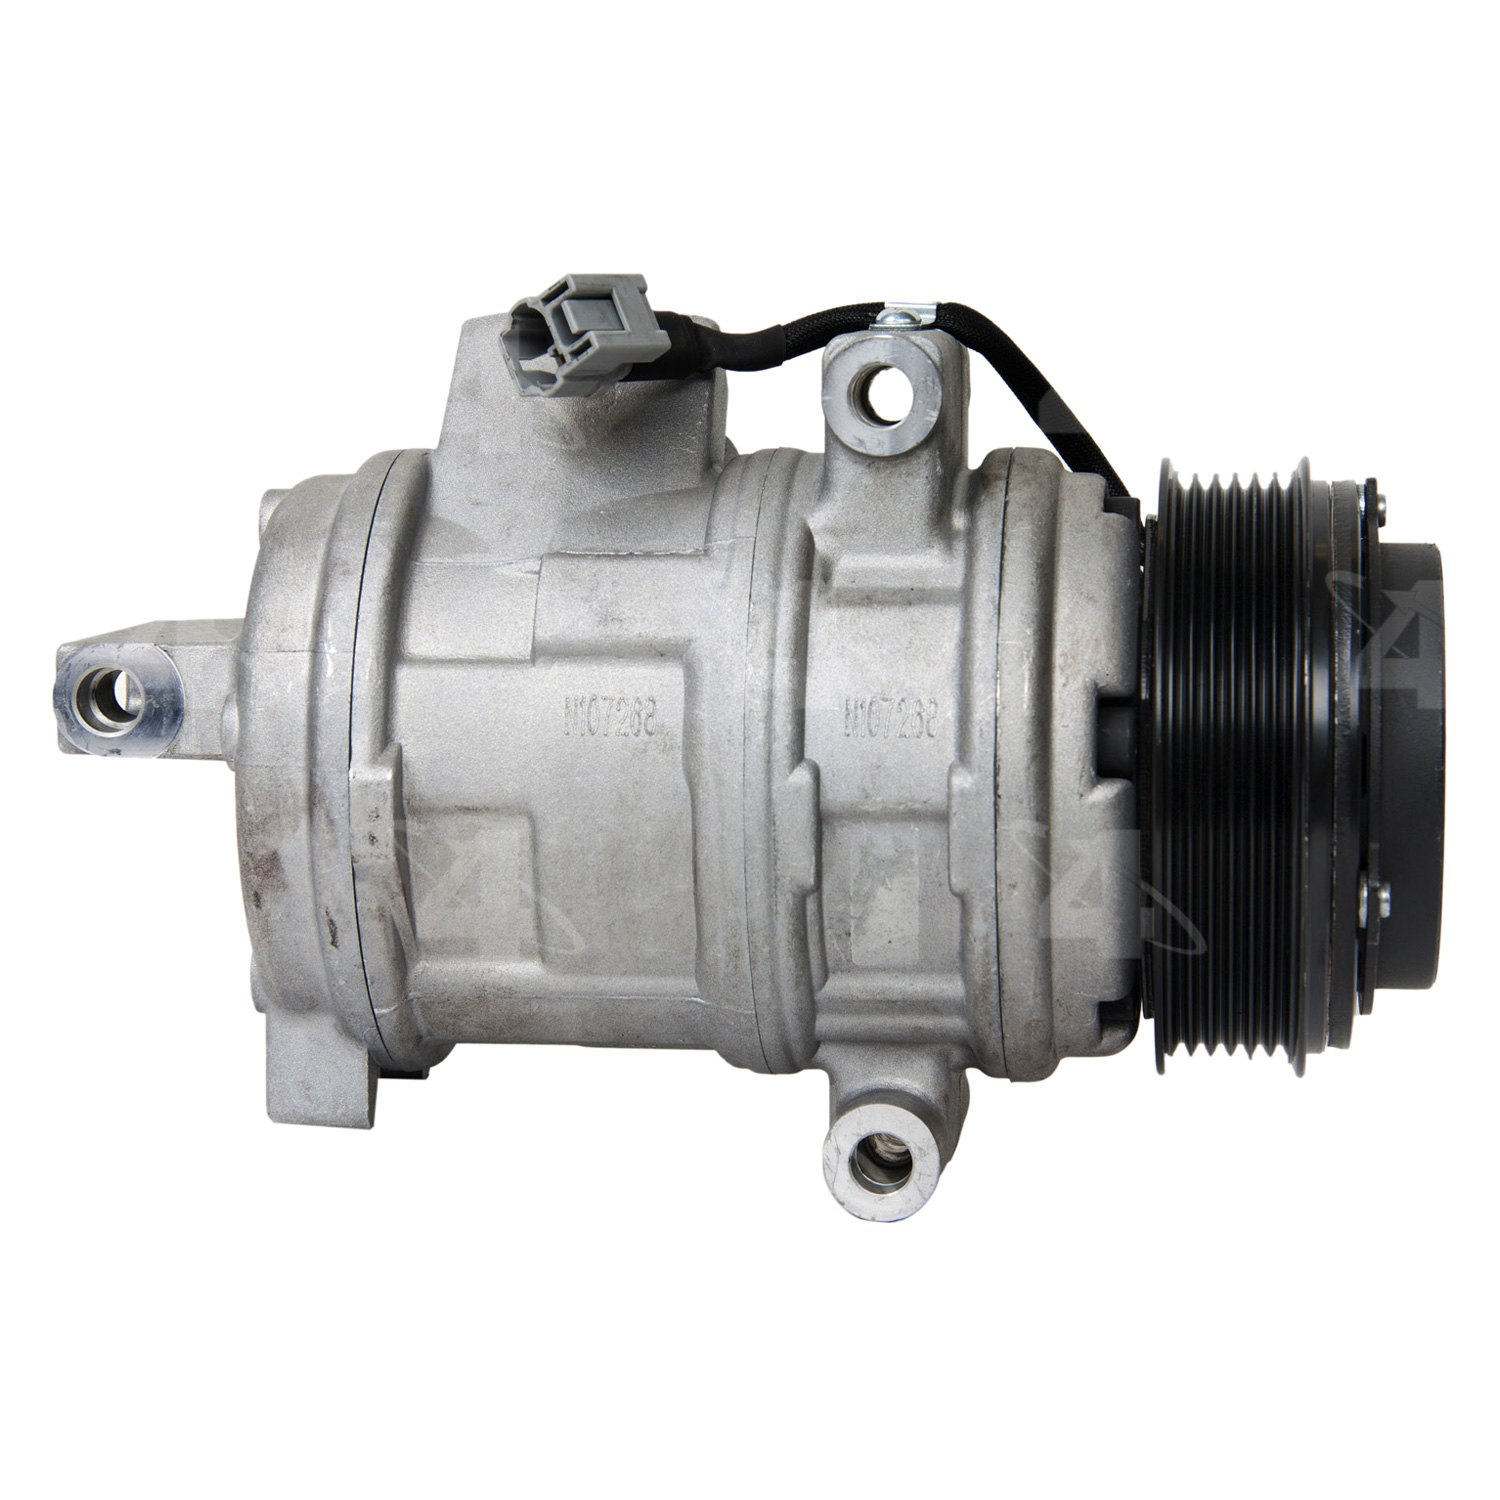 Gowe Air Conditioning Compressor For Car Mazda Cx 7 All: Mazda CX-9 With Factory Compressor Type